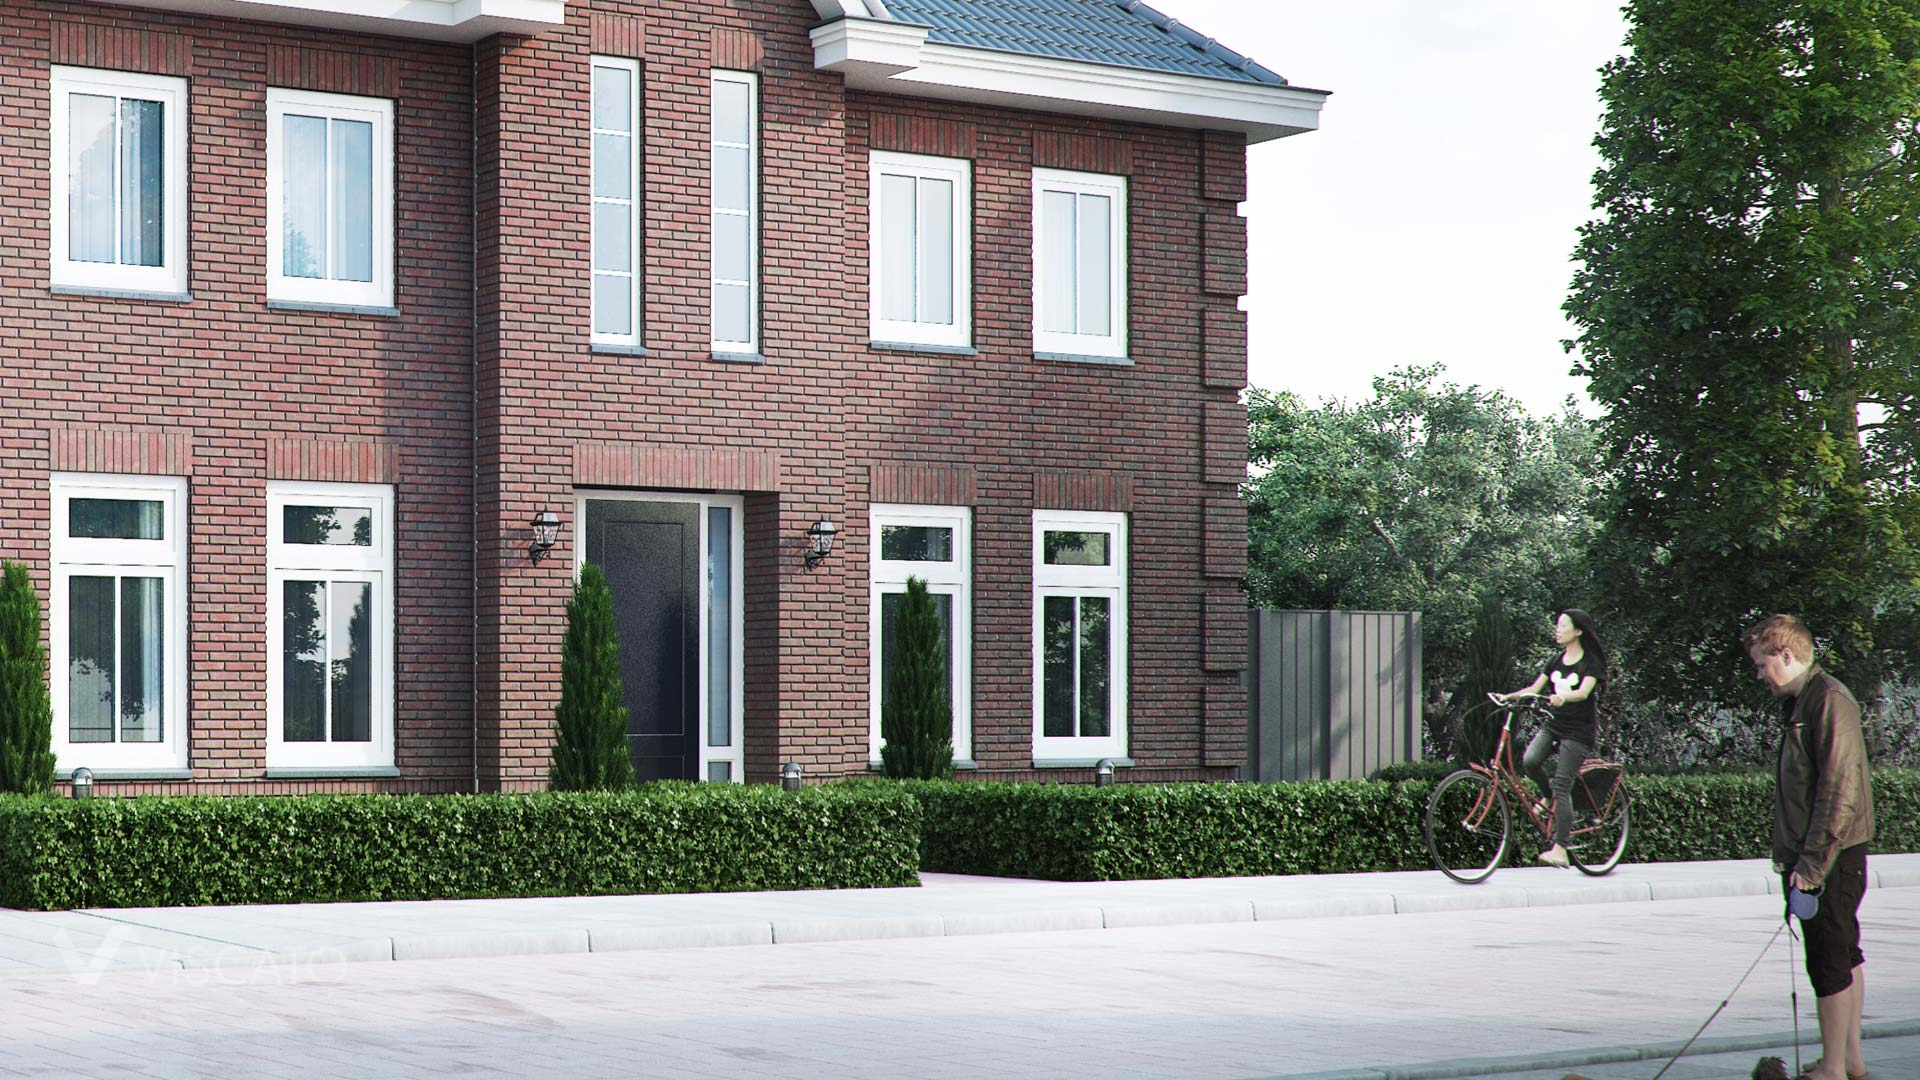 Brick villa house in Holland- front view entrance with hedges